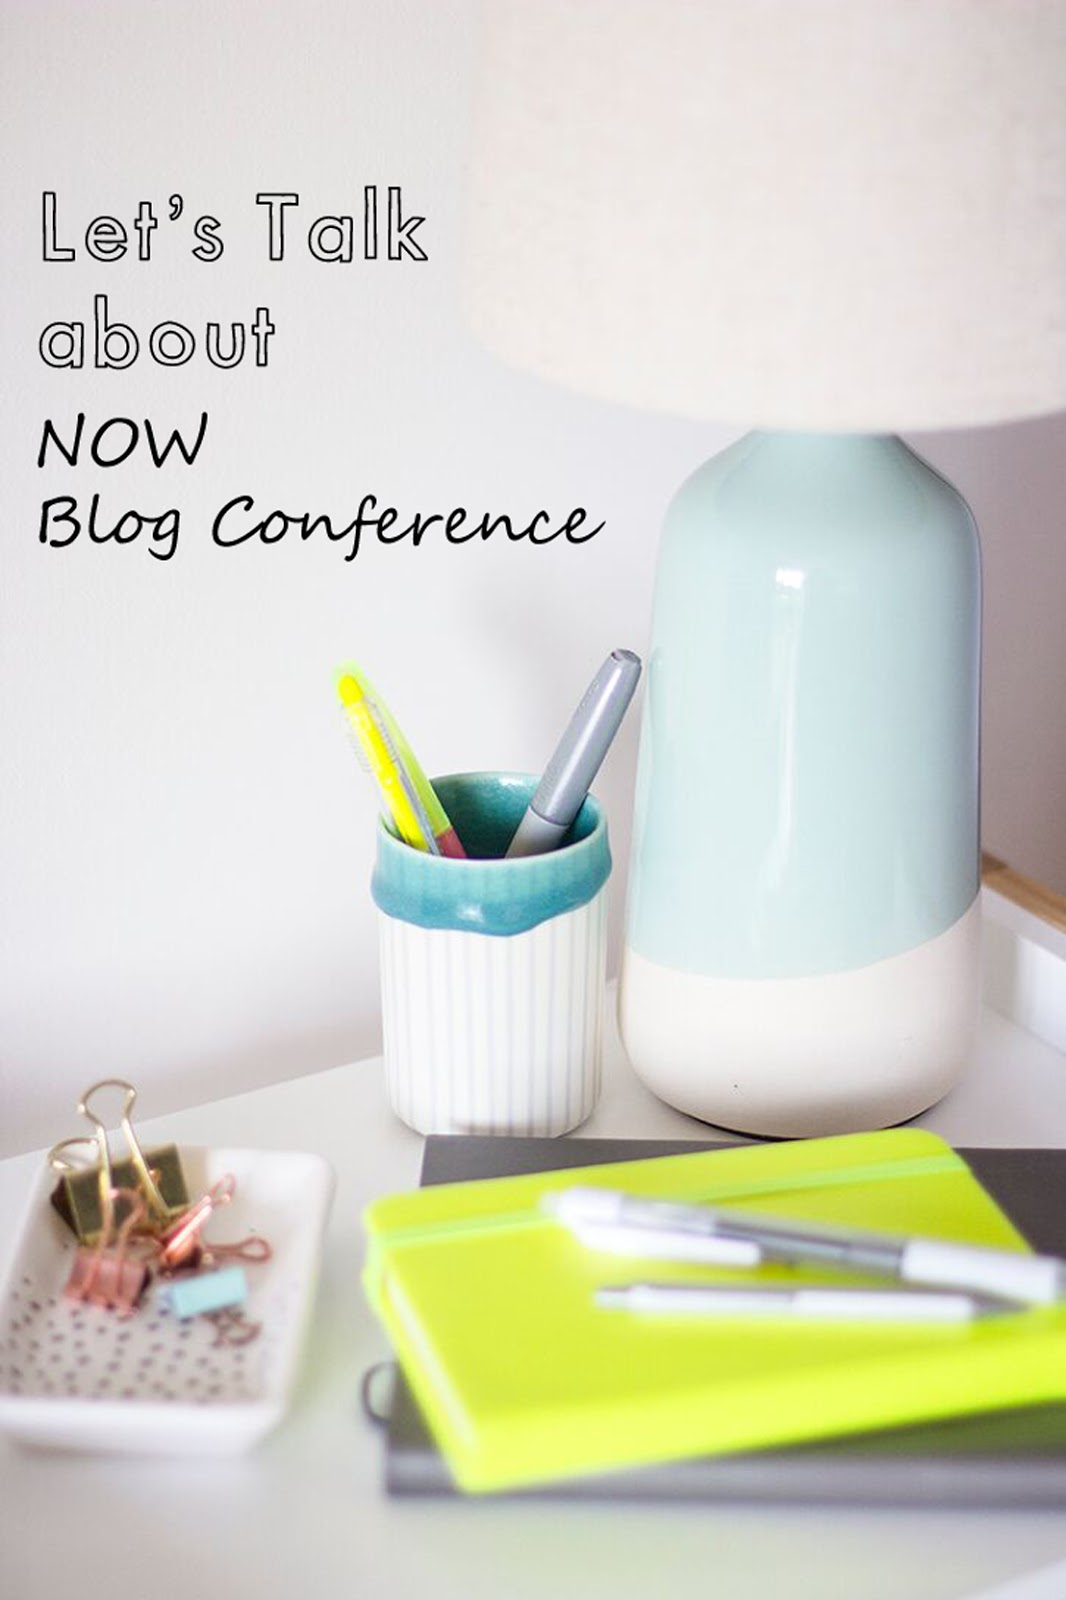 Let's Talk about: Now Blog Conference